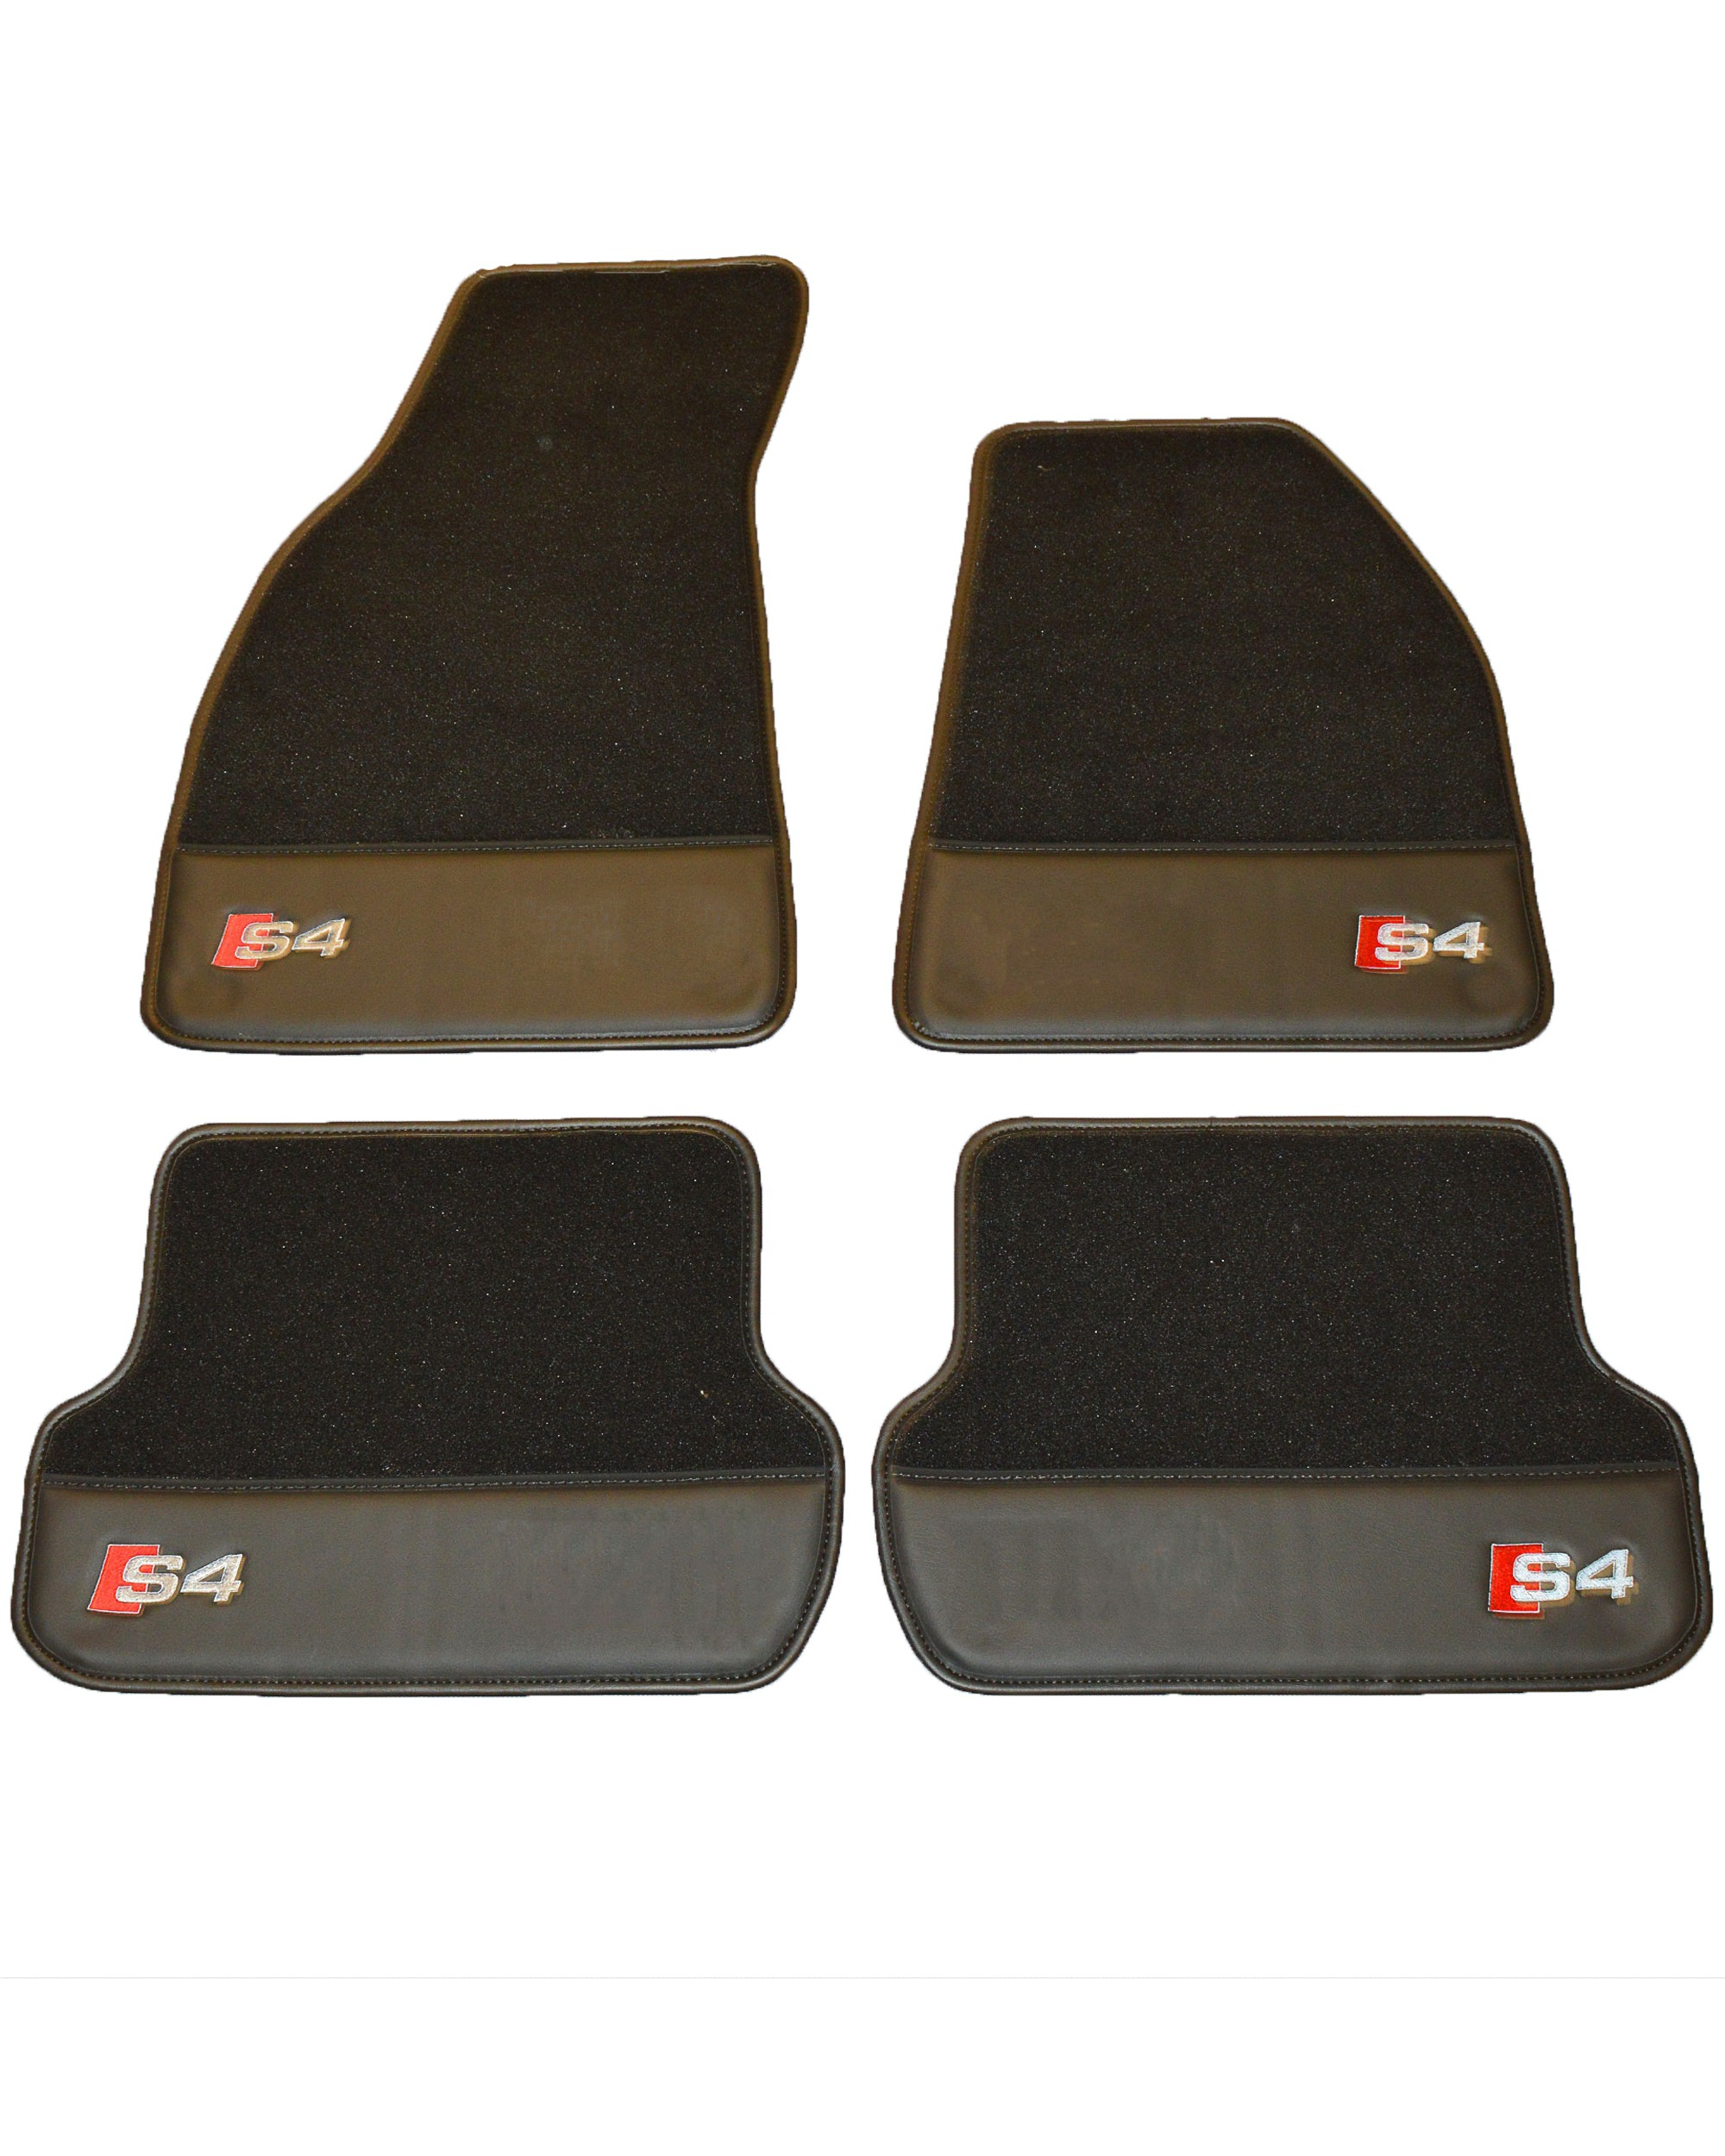 Audi S4 B6 & B7 Luxury Tailored Car Floor Mats